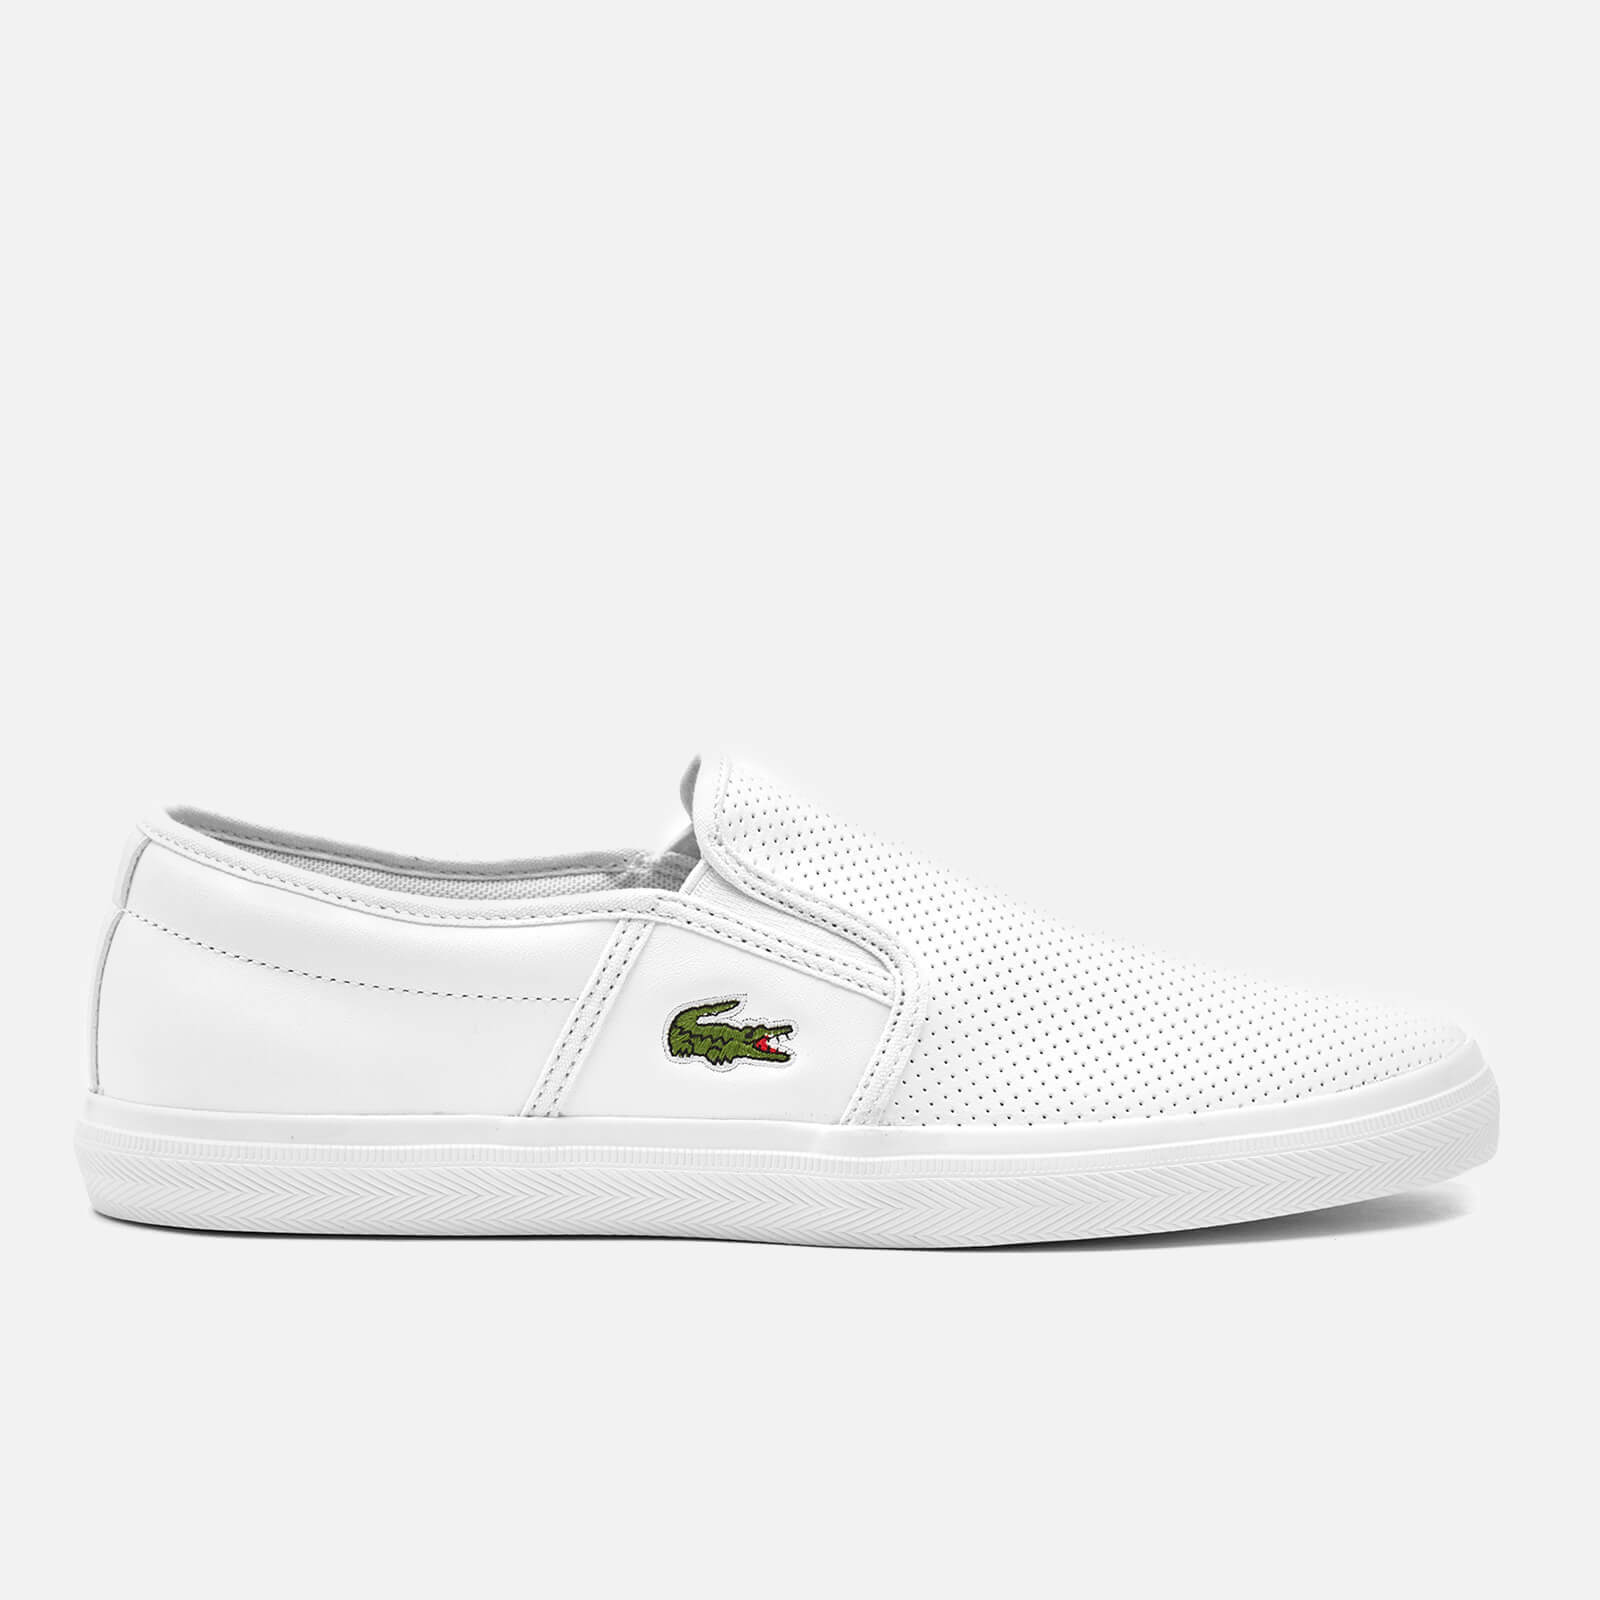 31a6c18230 Lacoste Men's Gazon Bl 1 Leather Slip-On Trainers - White